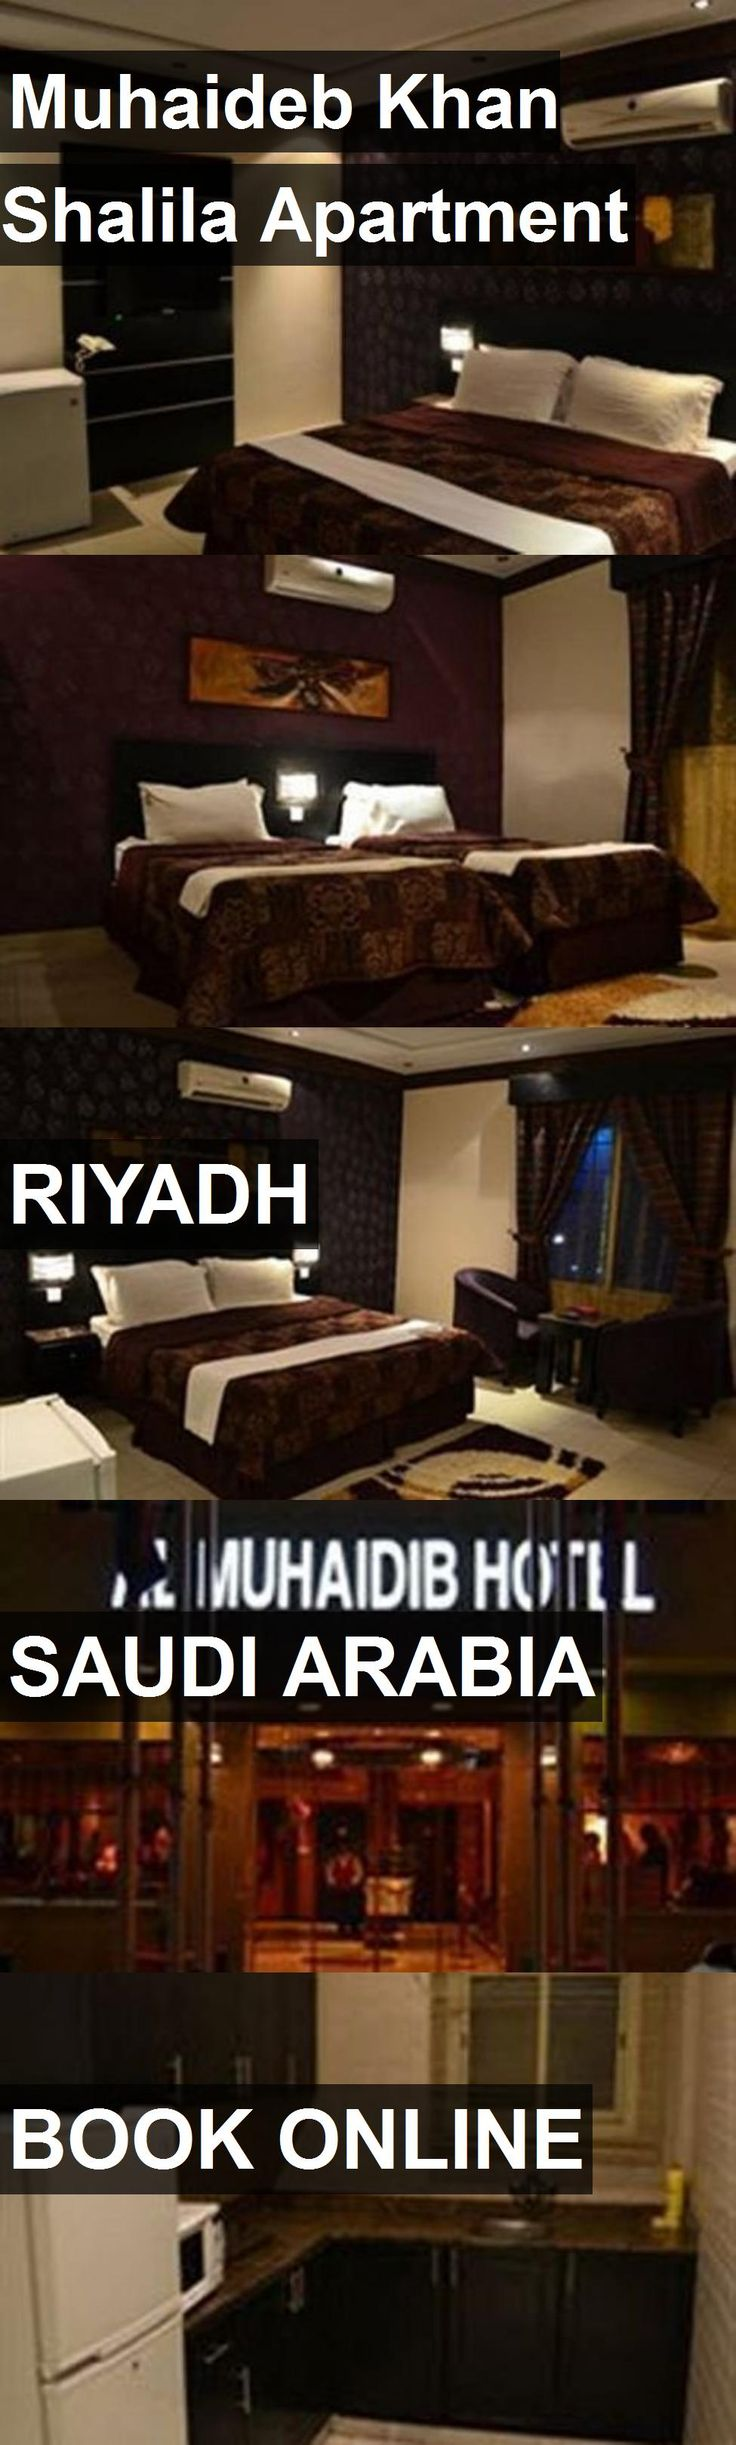 Hotel Muhaideb Khan Shalila Apartment in Riyadh, Saudi Arabia. For more information, photos, reviews and best prices please follow the link. #SaudiArabia #Riyadh #MuhaidebKhanShalilaApartment #hotel #travel #vacation